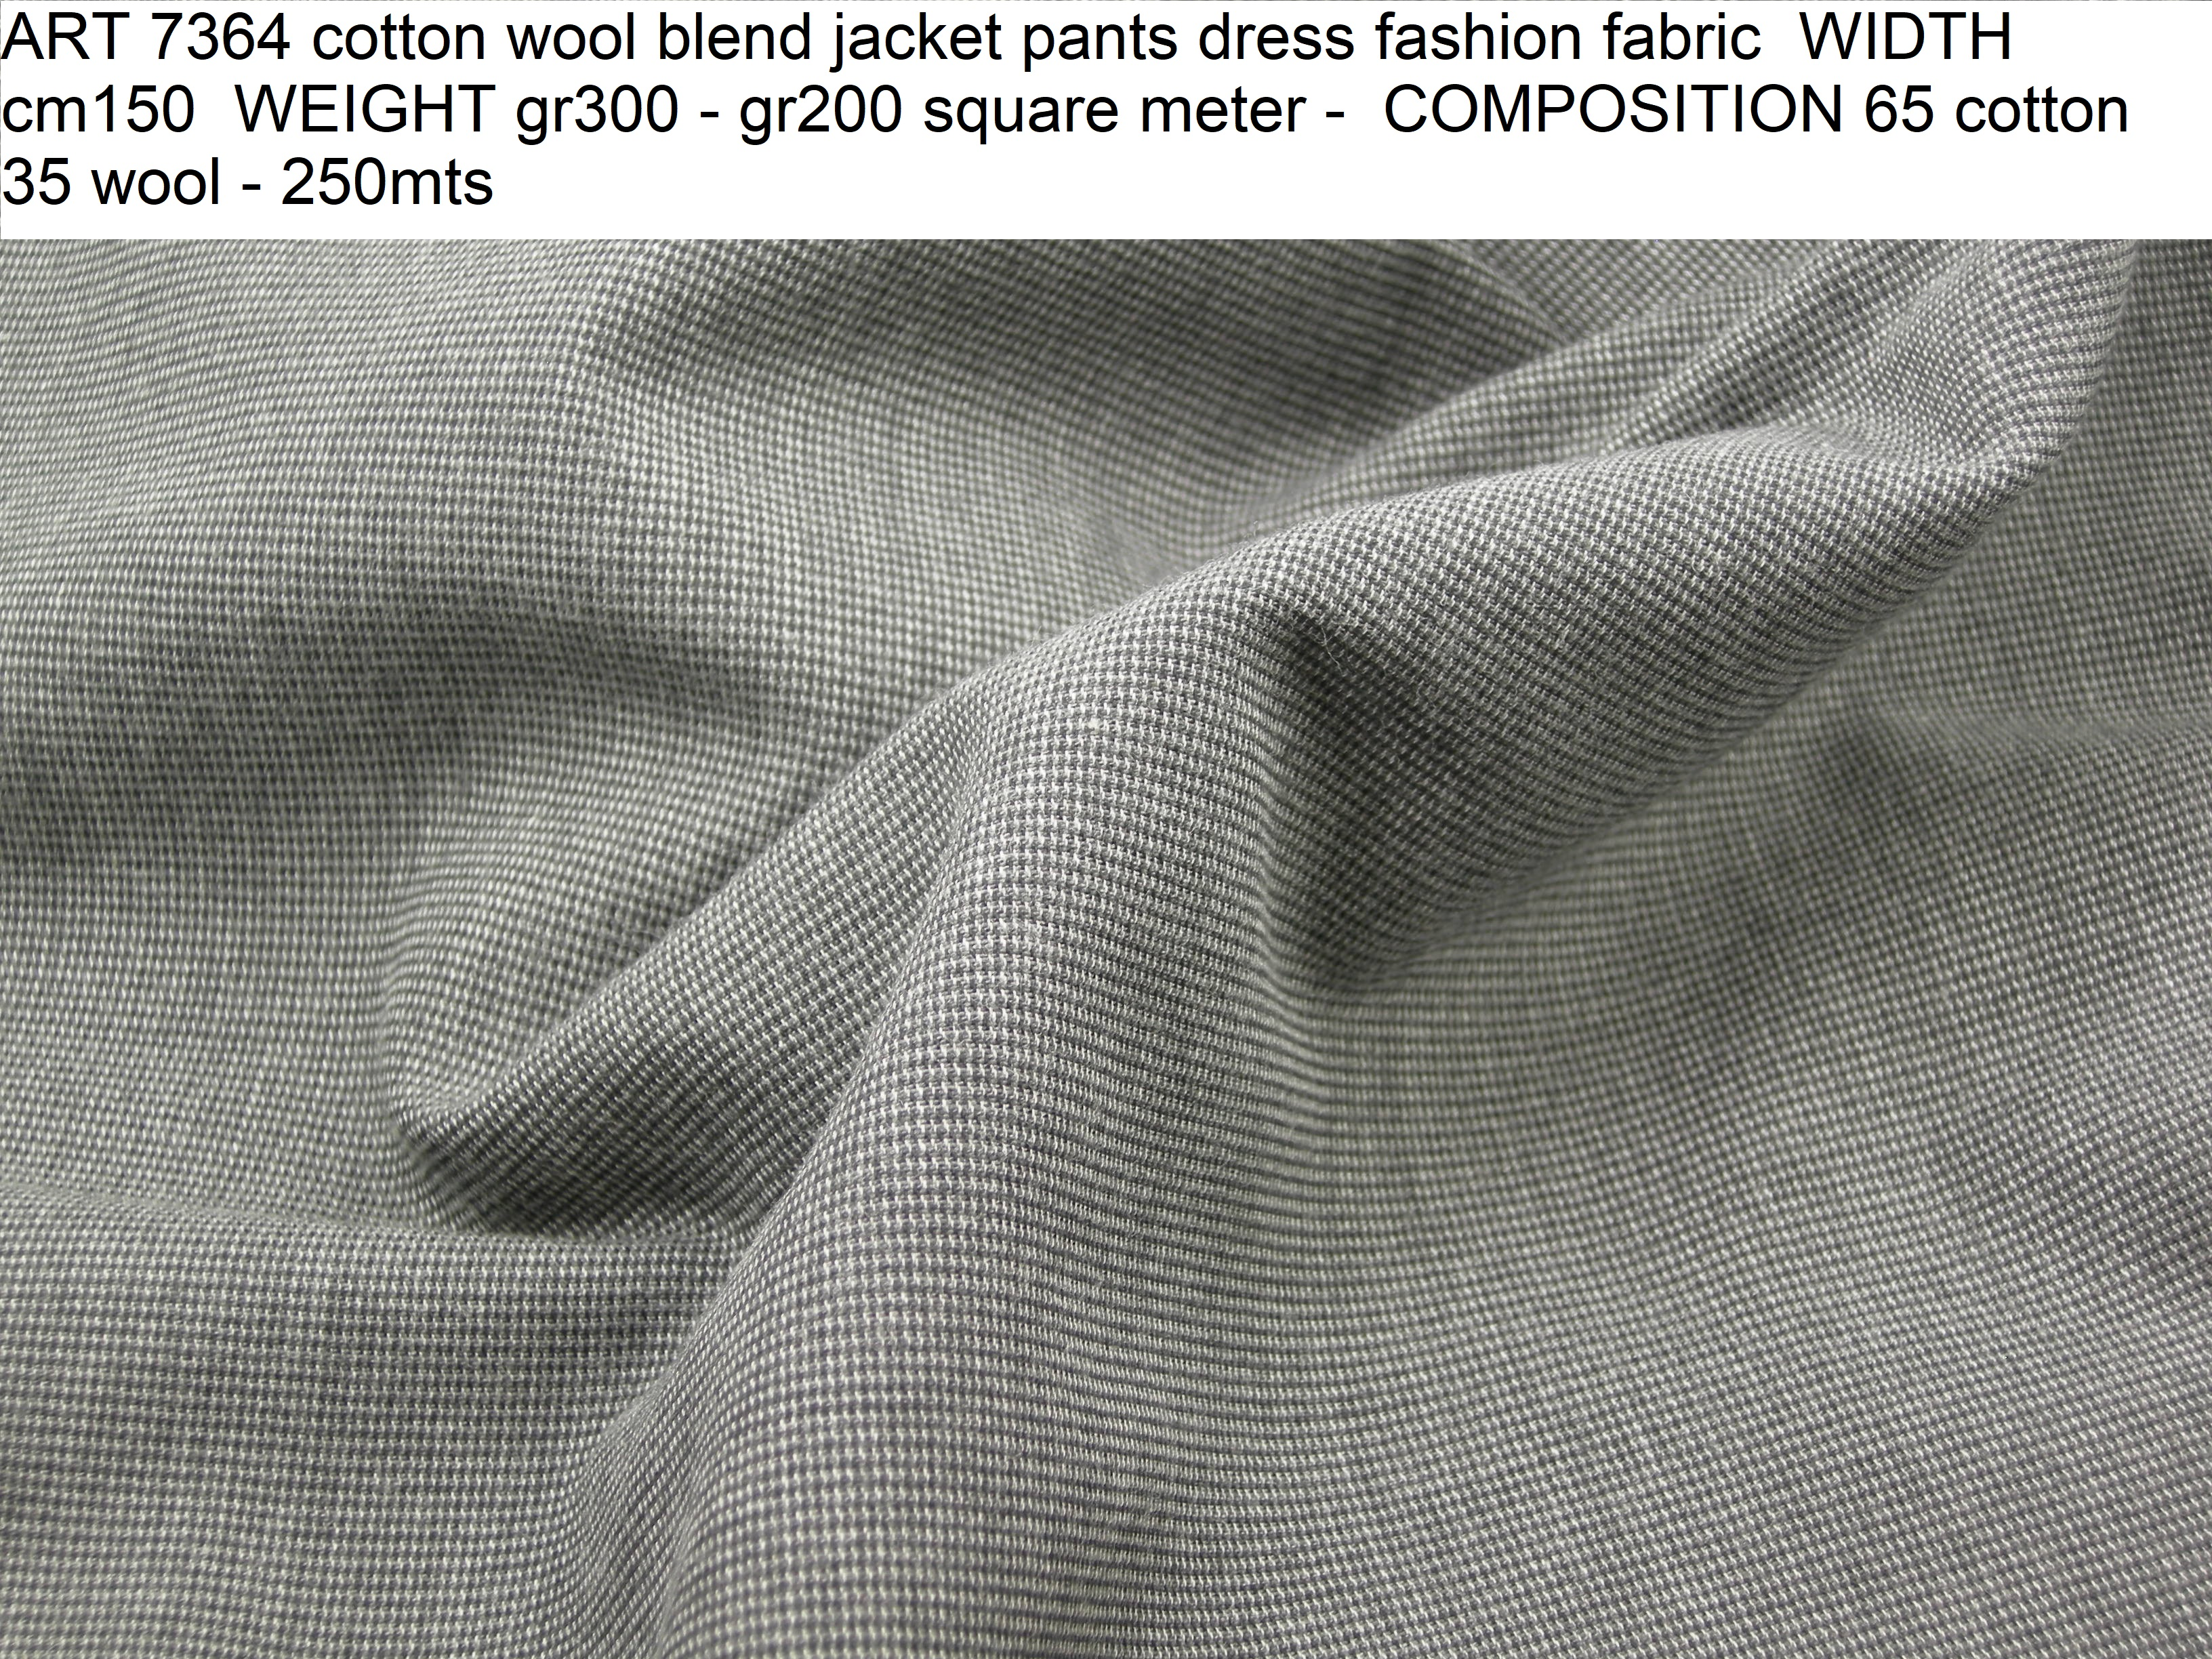 ART 7364 cotton wool blend jacket pants dress fashion fabric WIDTH cm150 WEIGHT gr300 - gr200 square meter - COMPOSITION 65 cotton 35 wool - 250mts